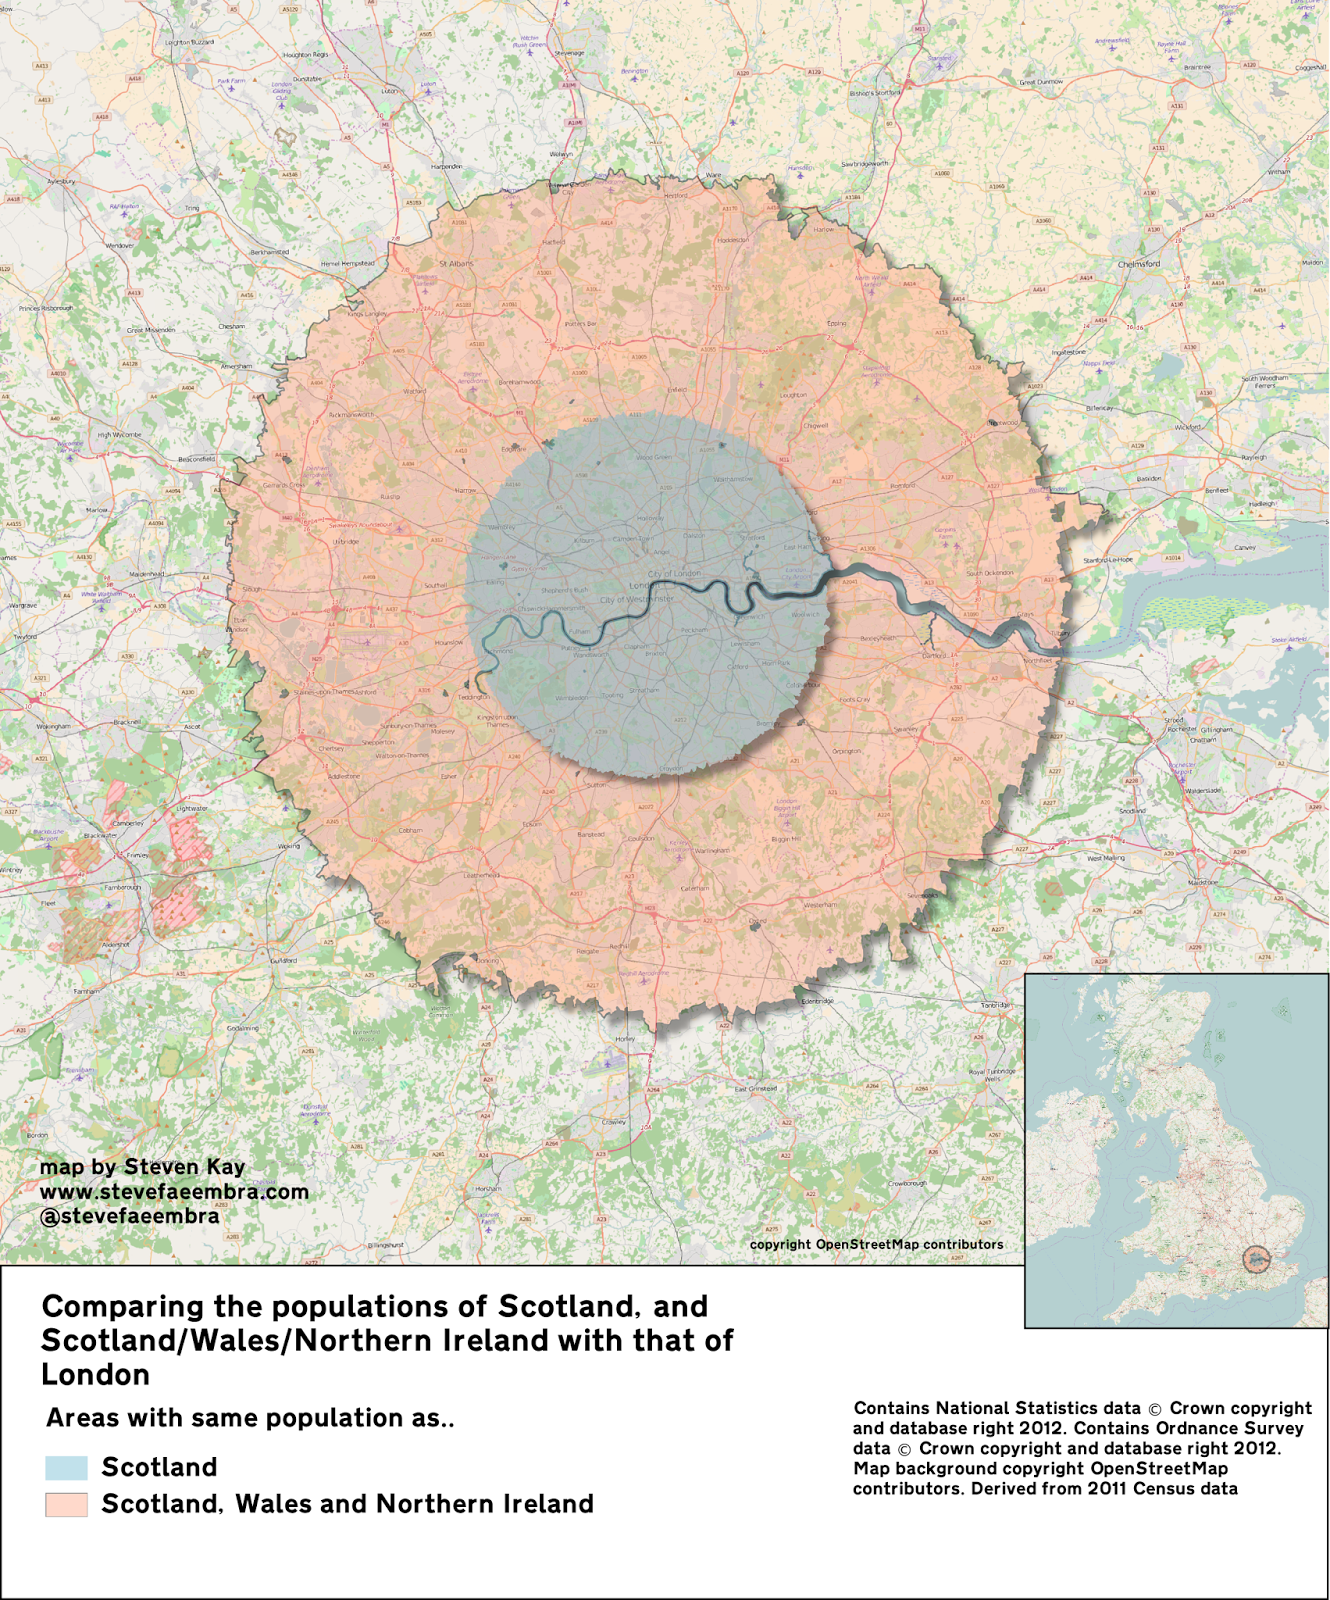 Comparing the population of Scotland with London